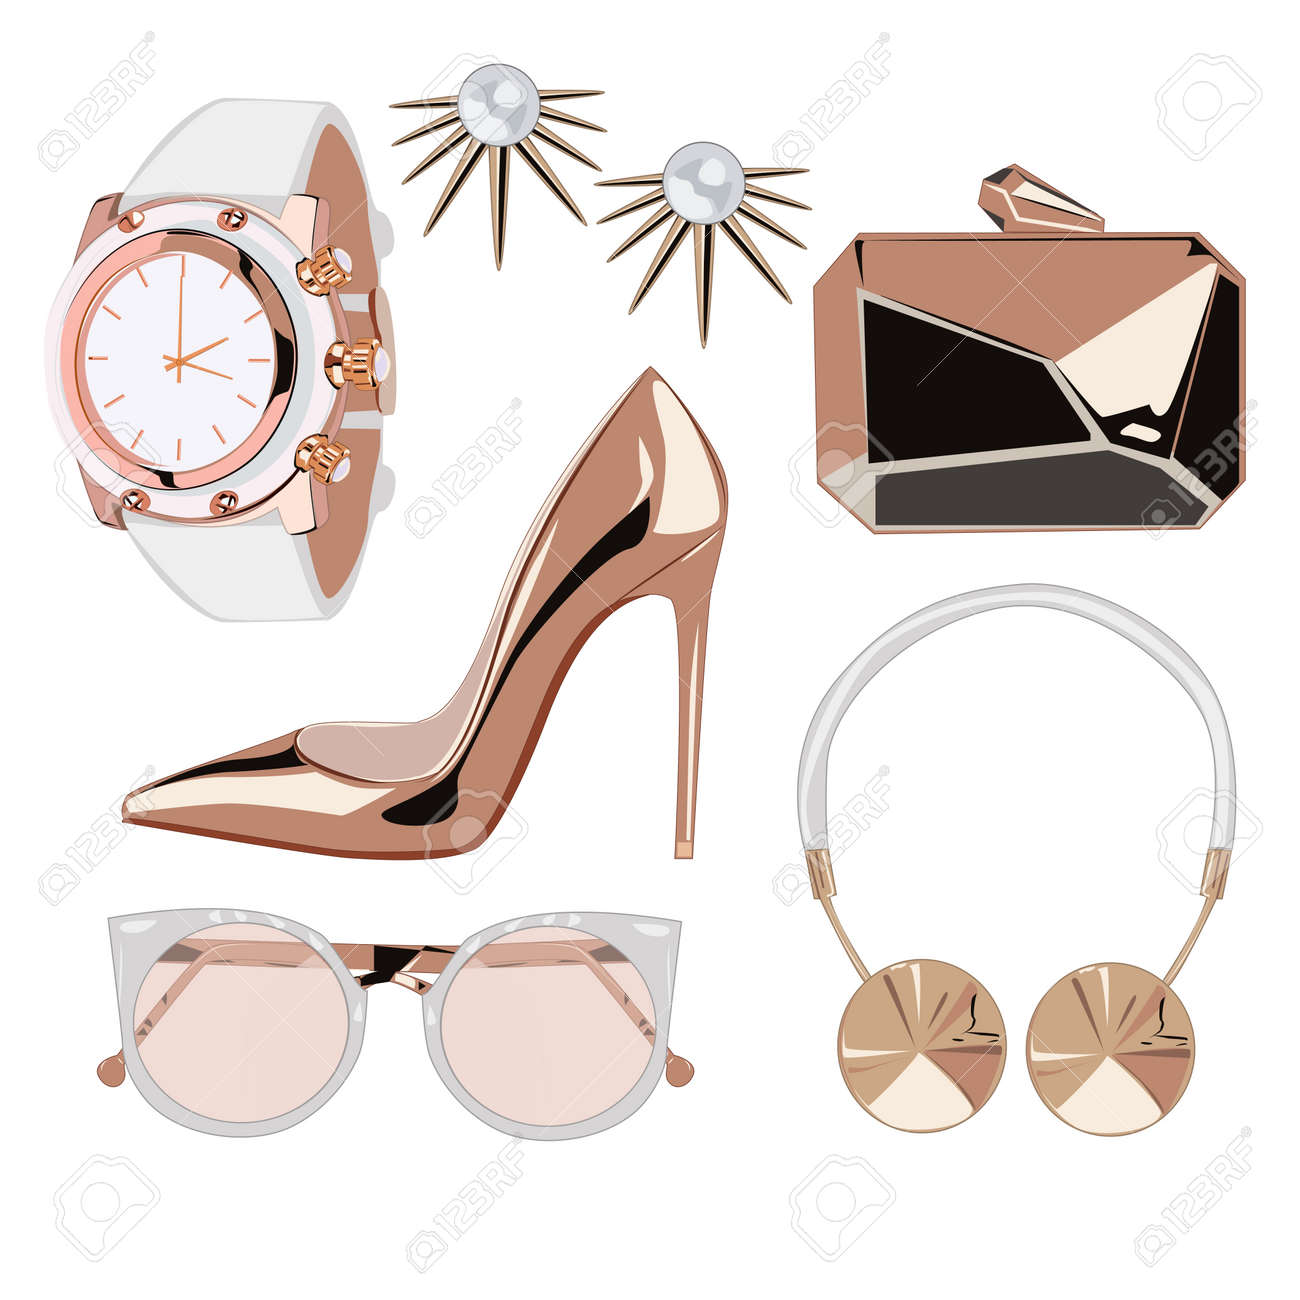 Golden rose fashion accessories illustration